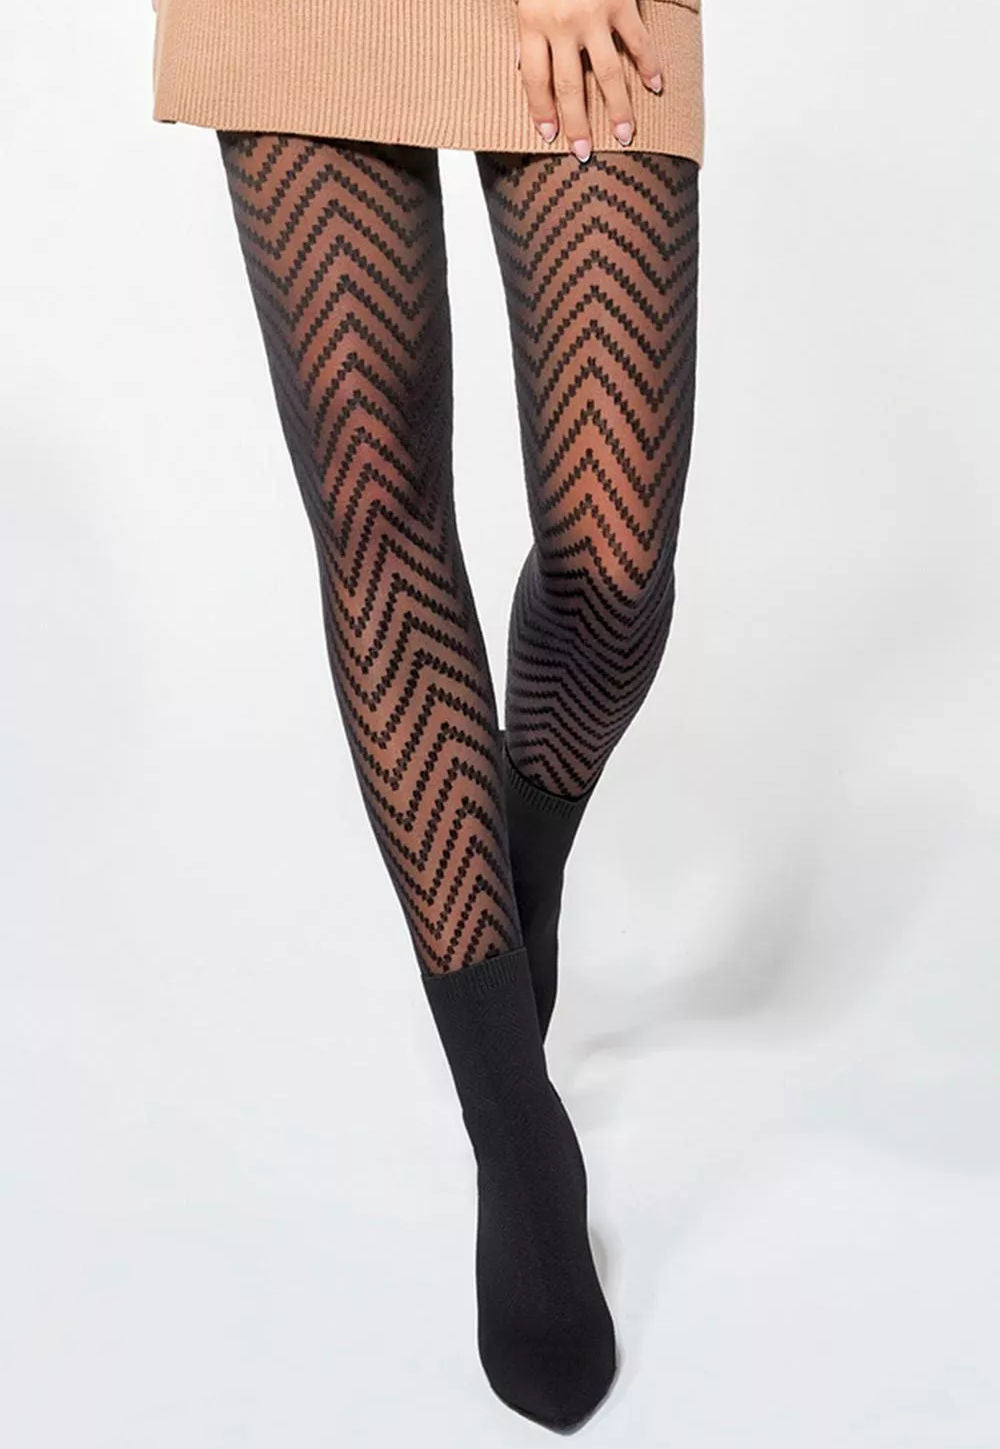 Sonia Chevron Stripes Patterned Tights by Adrian in black